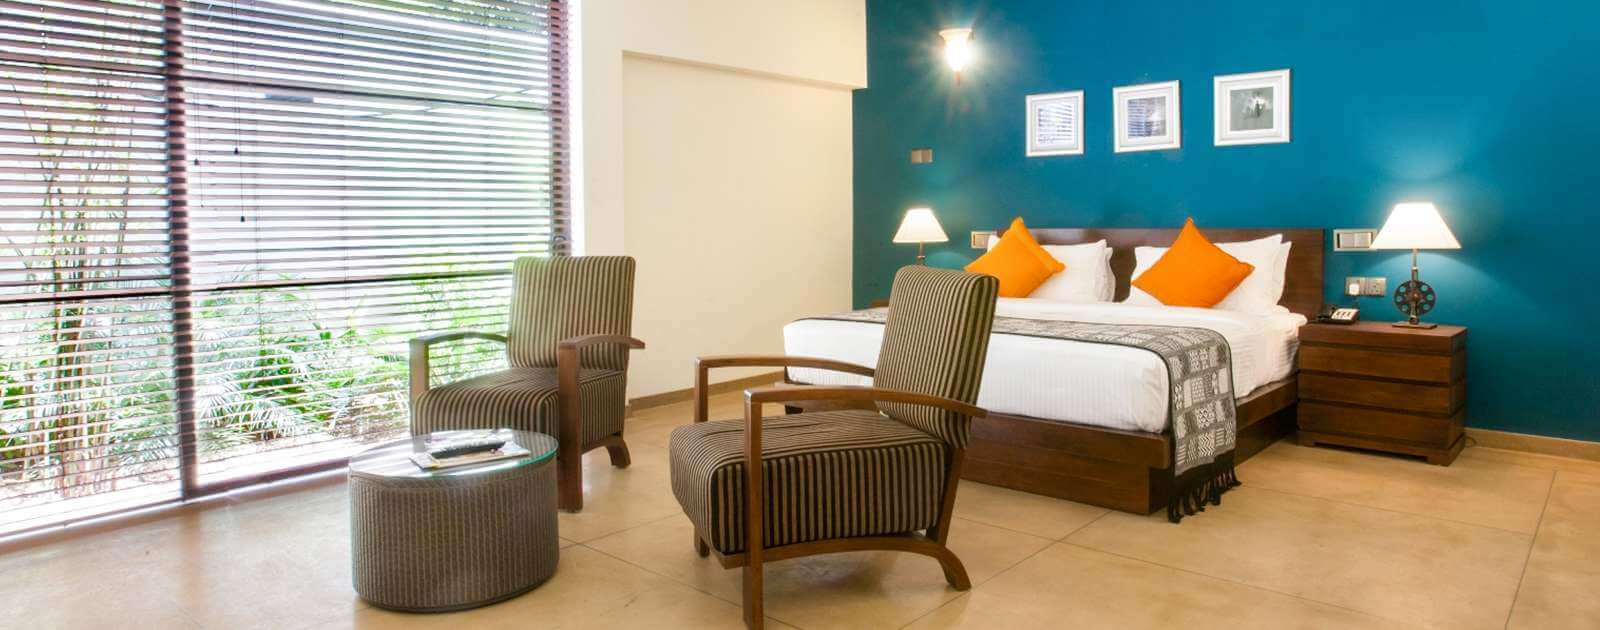 Best room rates in Colombo city hotels